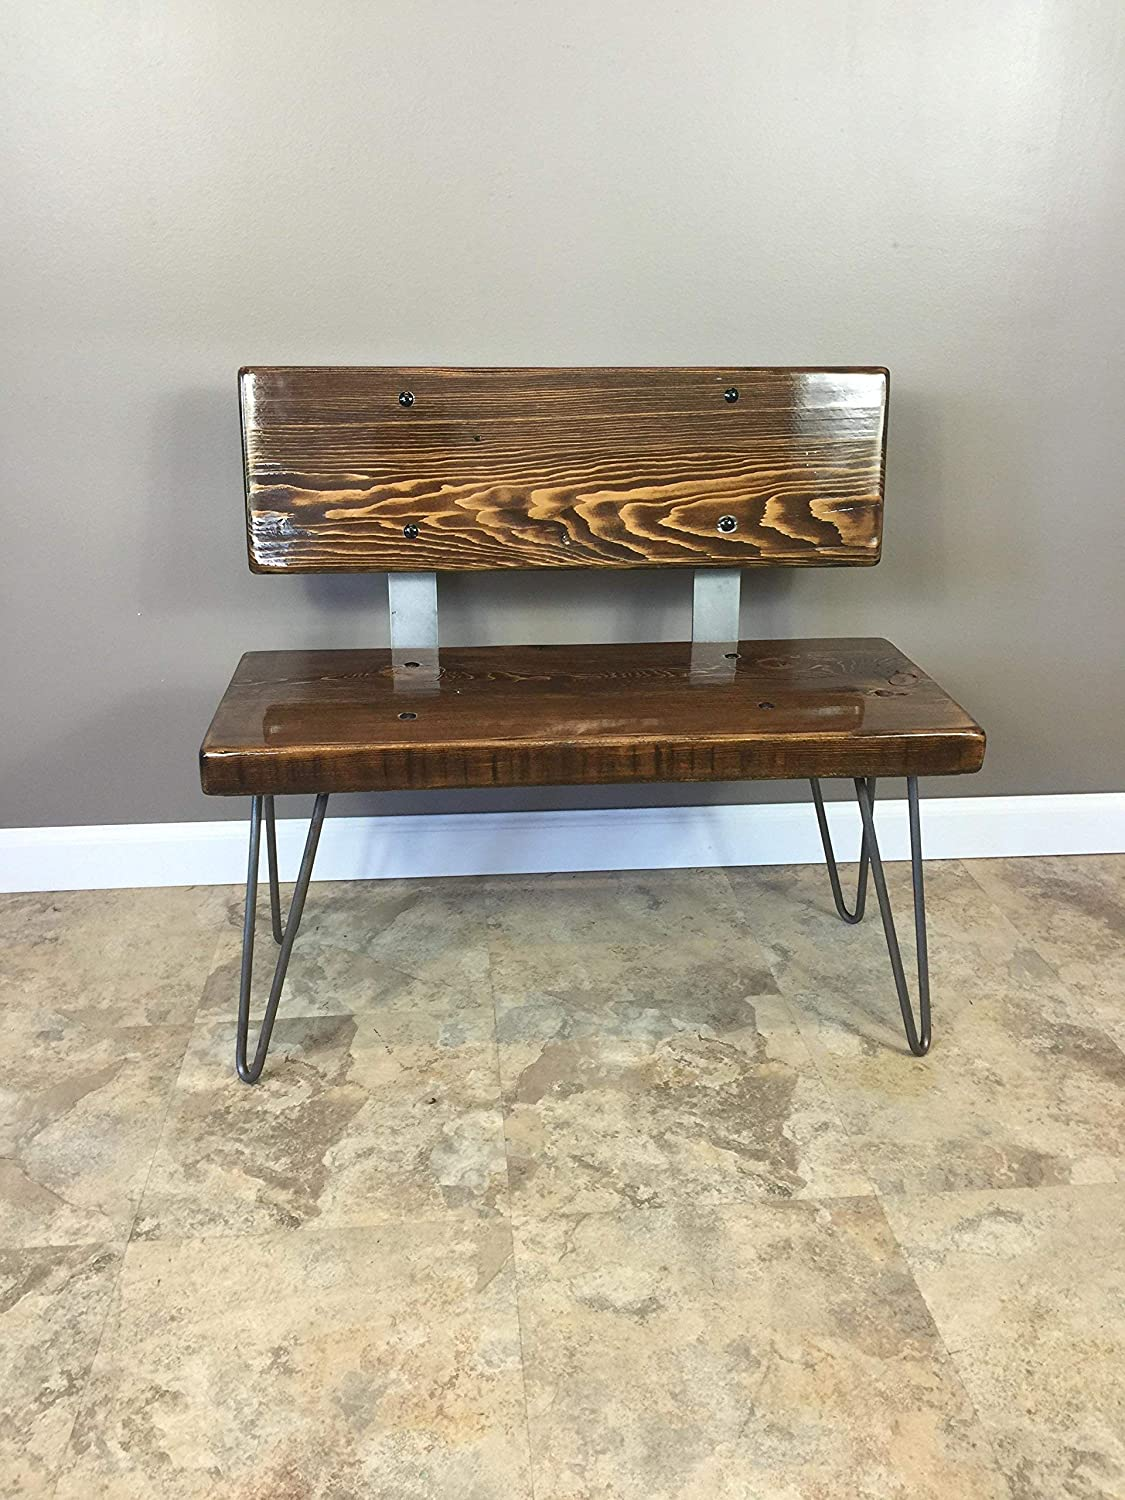 Wood Bench Wooden Bench Hairpin Reclaimed Wood Bench Wooden Furniture Handmade from Barn Wood